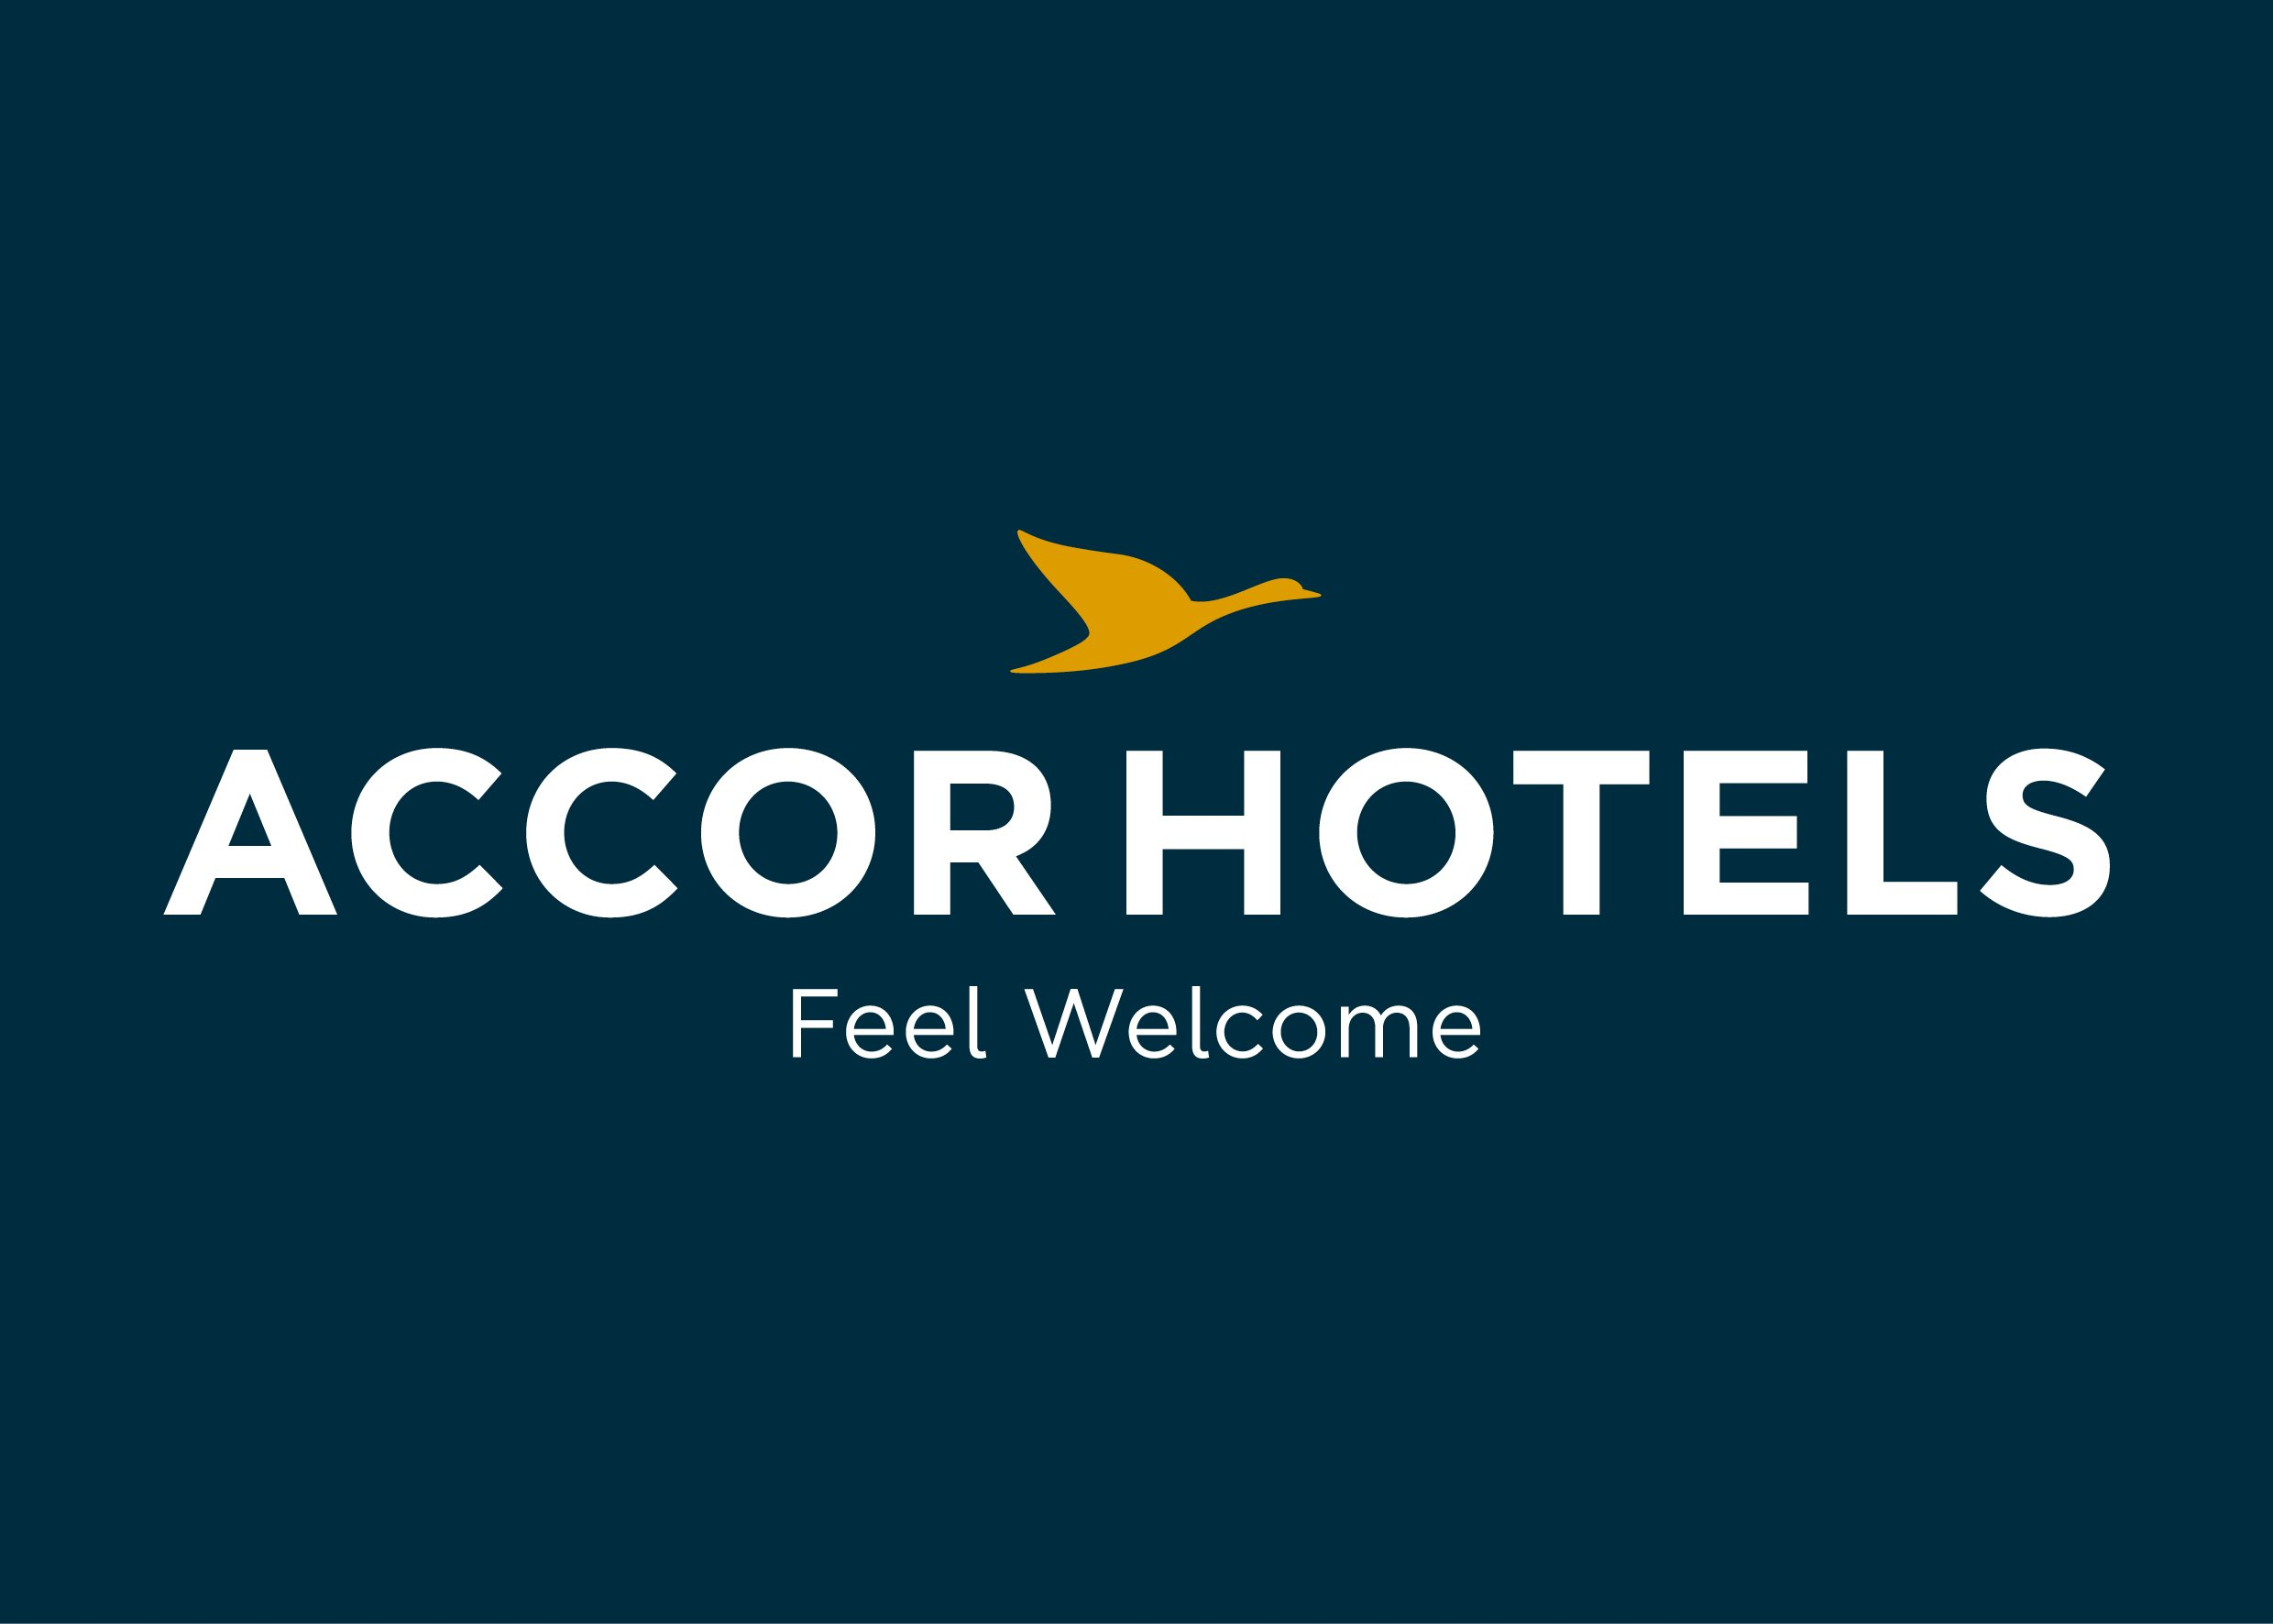 (Image: Accor Hotels)